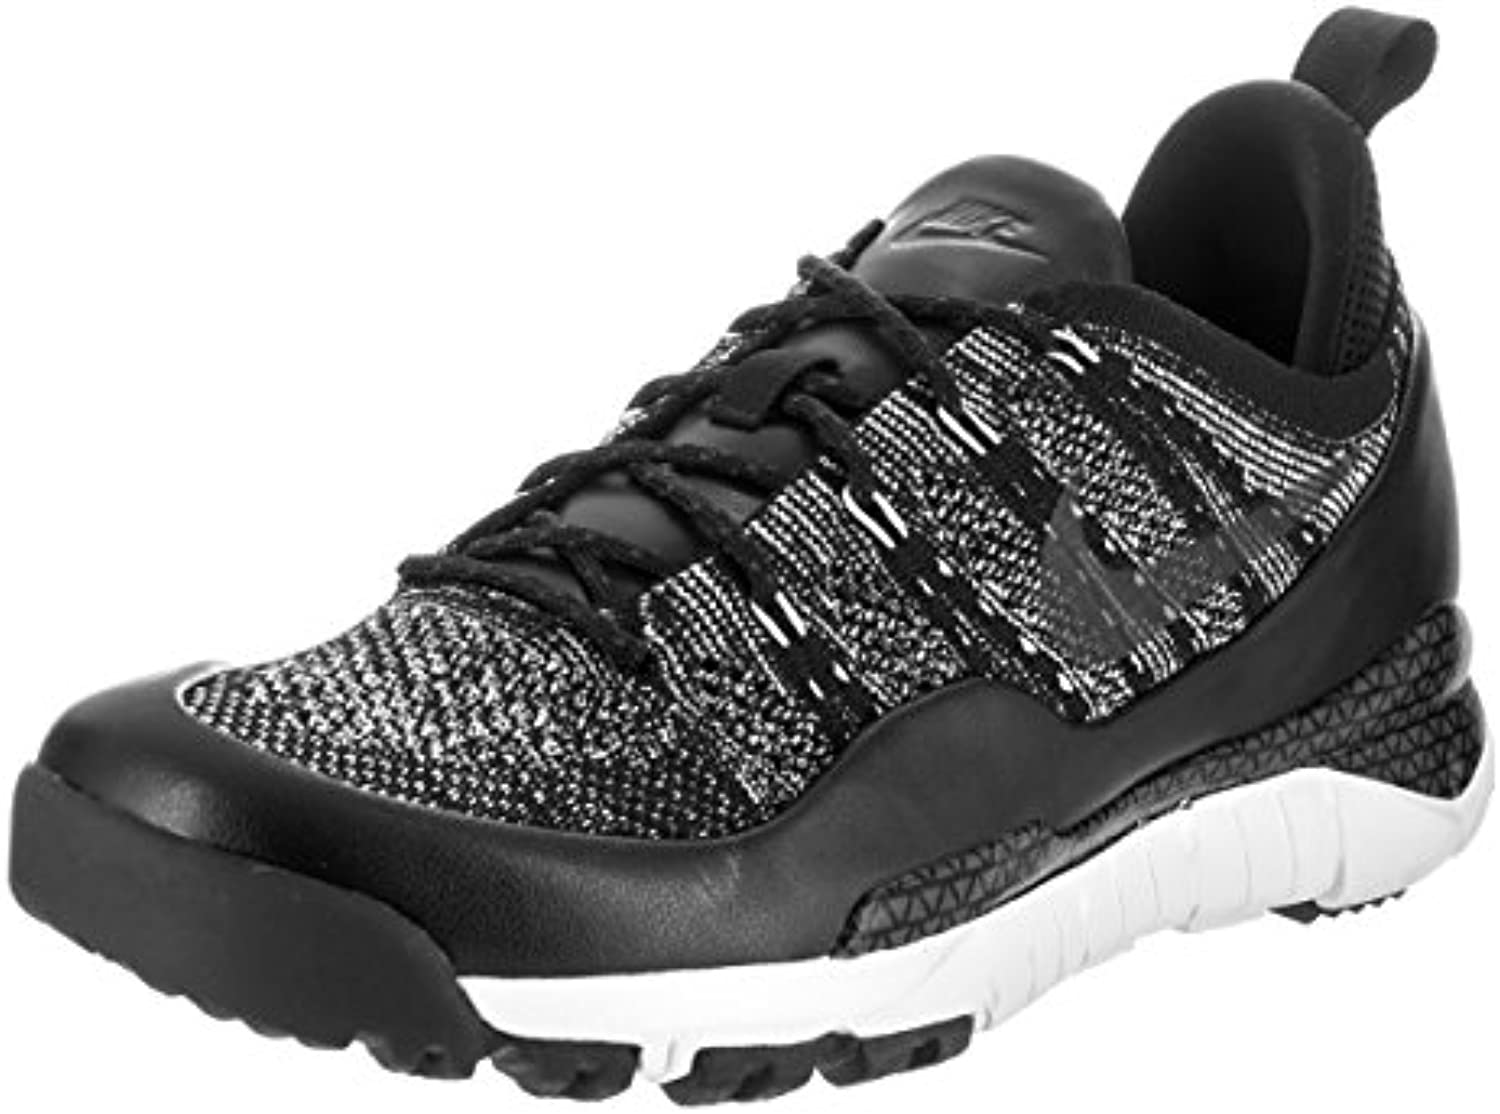 Nike Men's Lupinek Flyknit Low Casual Shoe